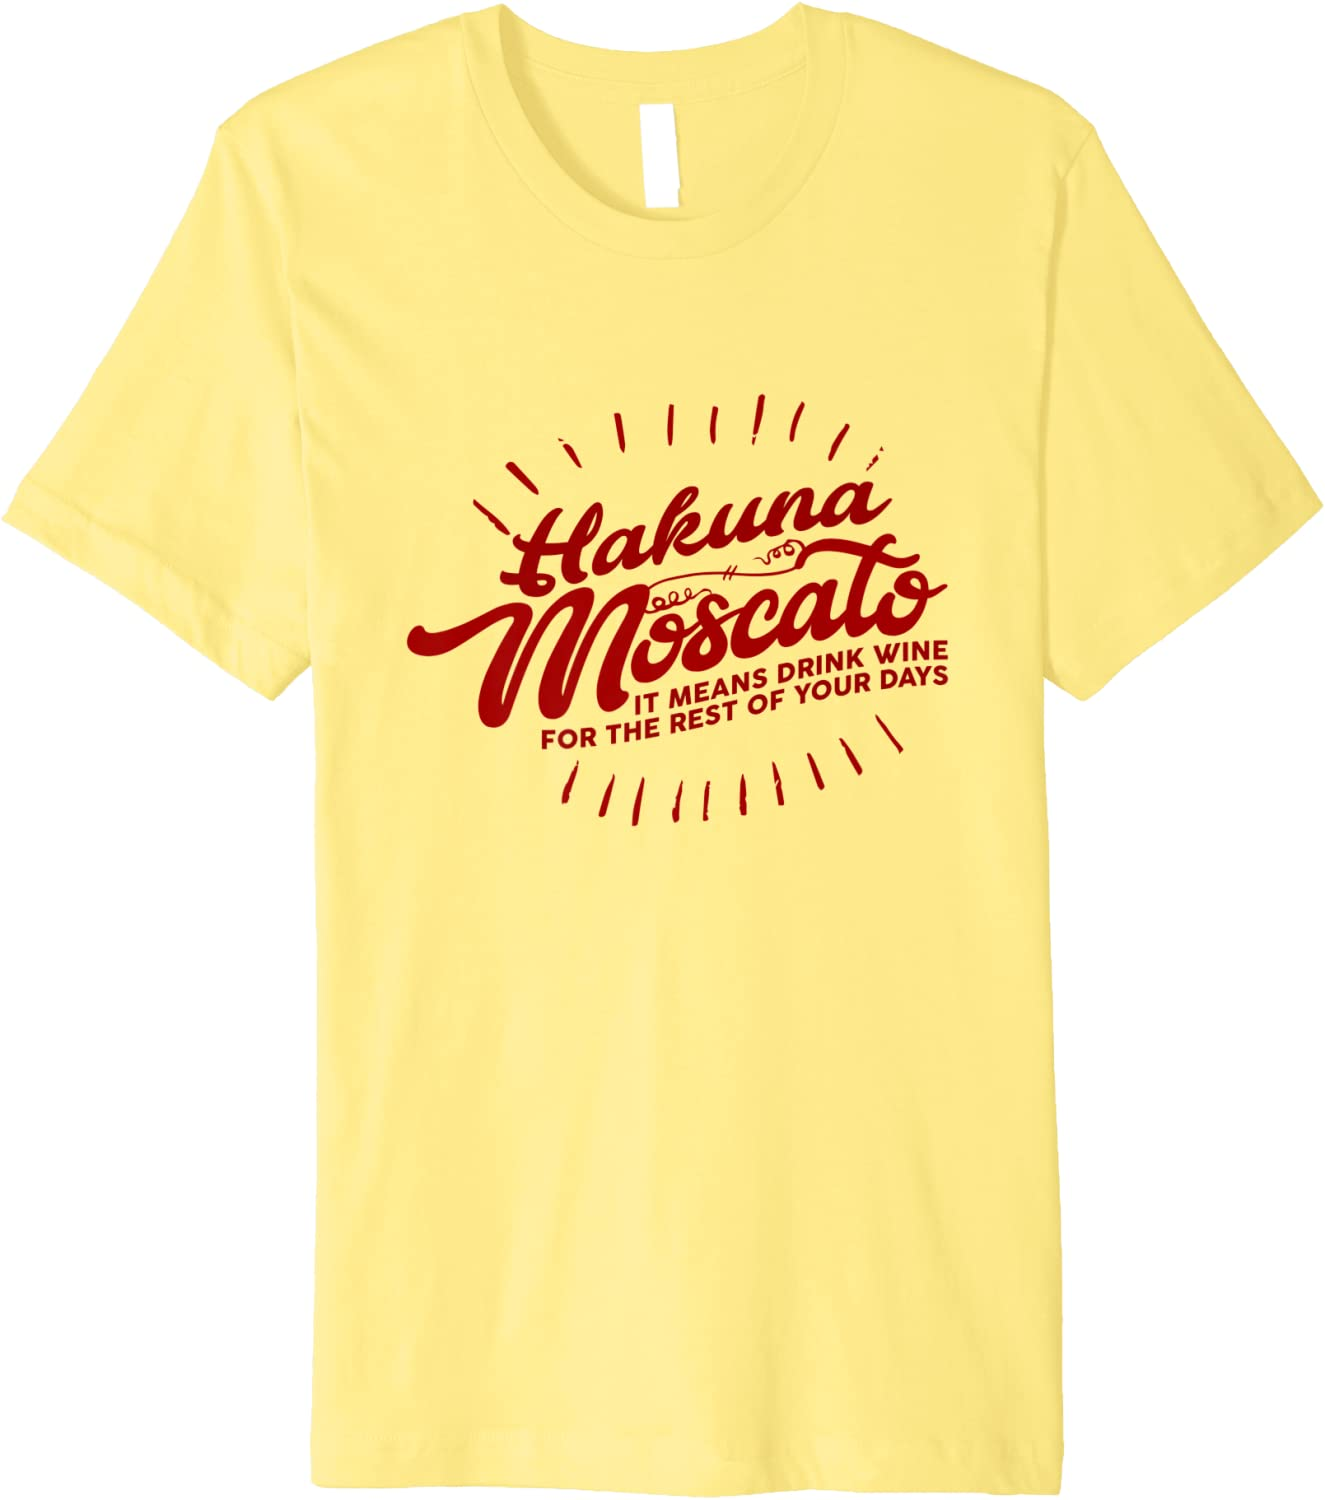 Hakuna Moscato Shirt | Means: Drink Wine for the ... T-Shirt